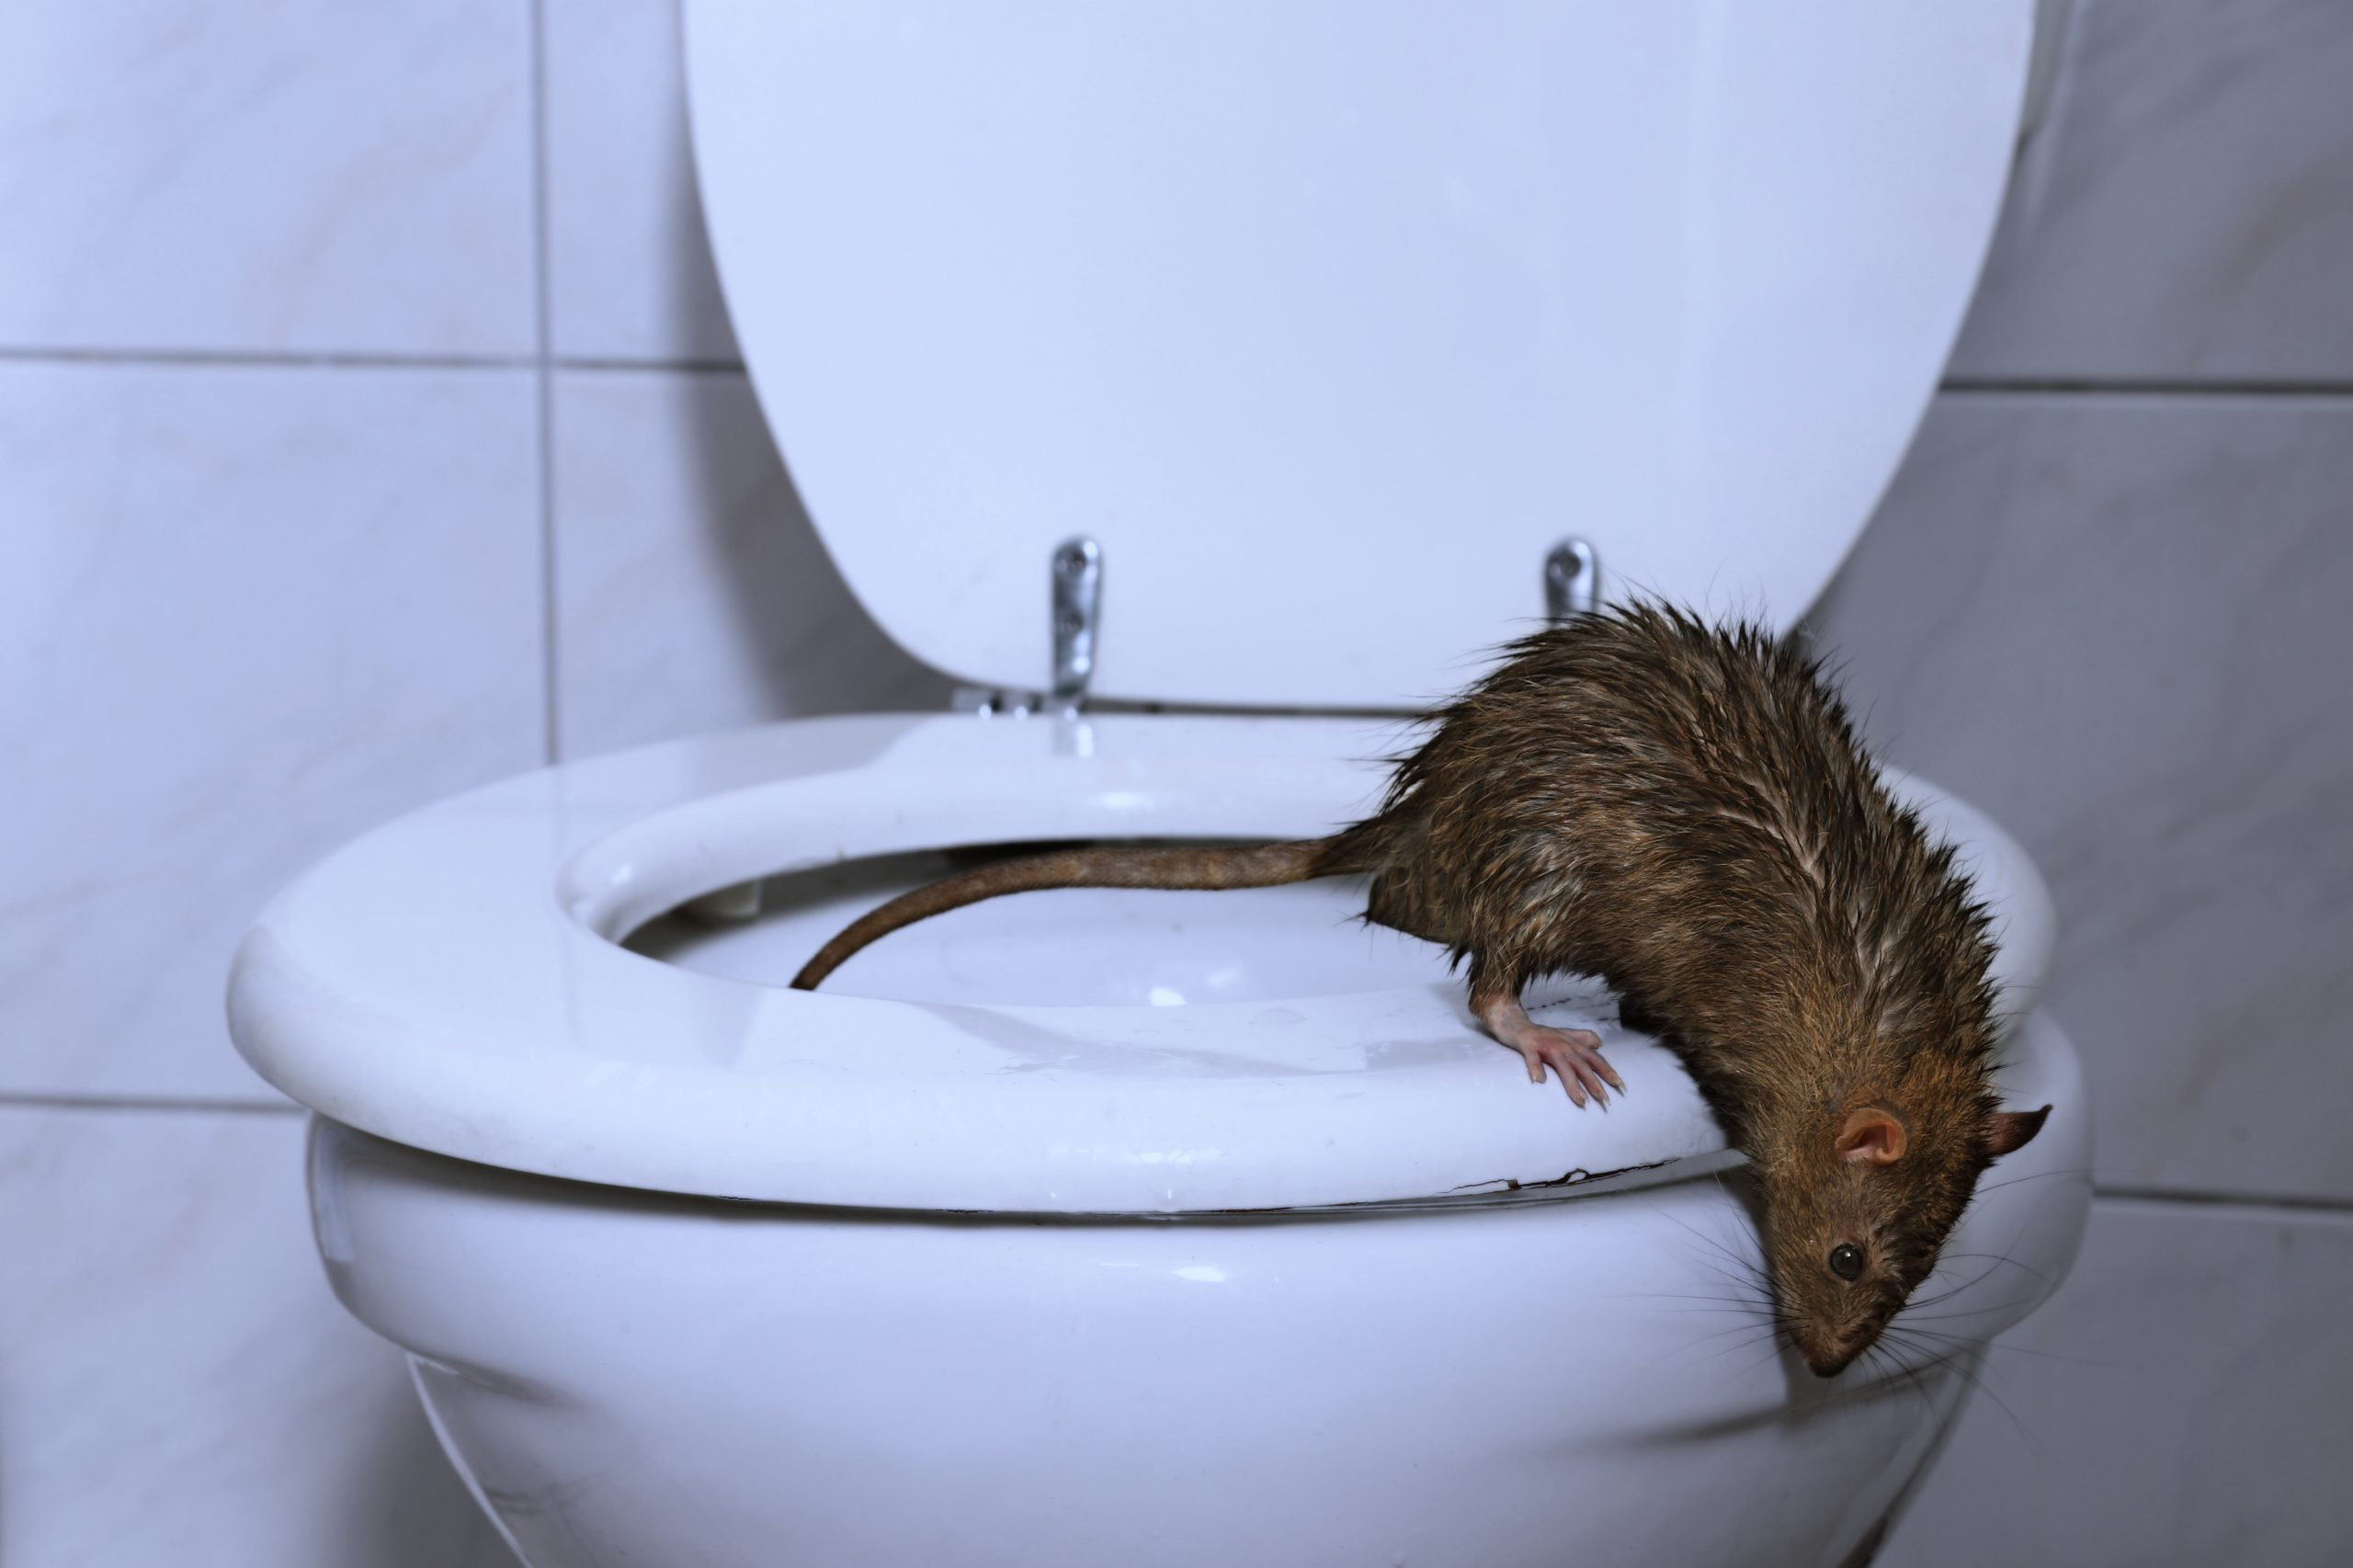 How To Keep Rats From Coming Up The Toilet